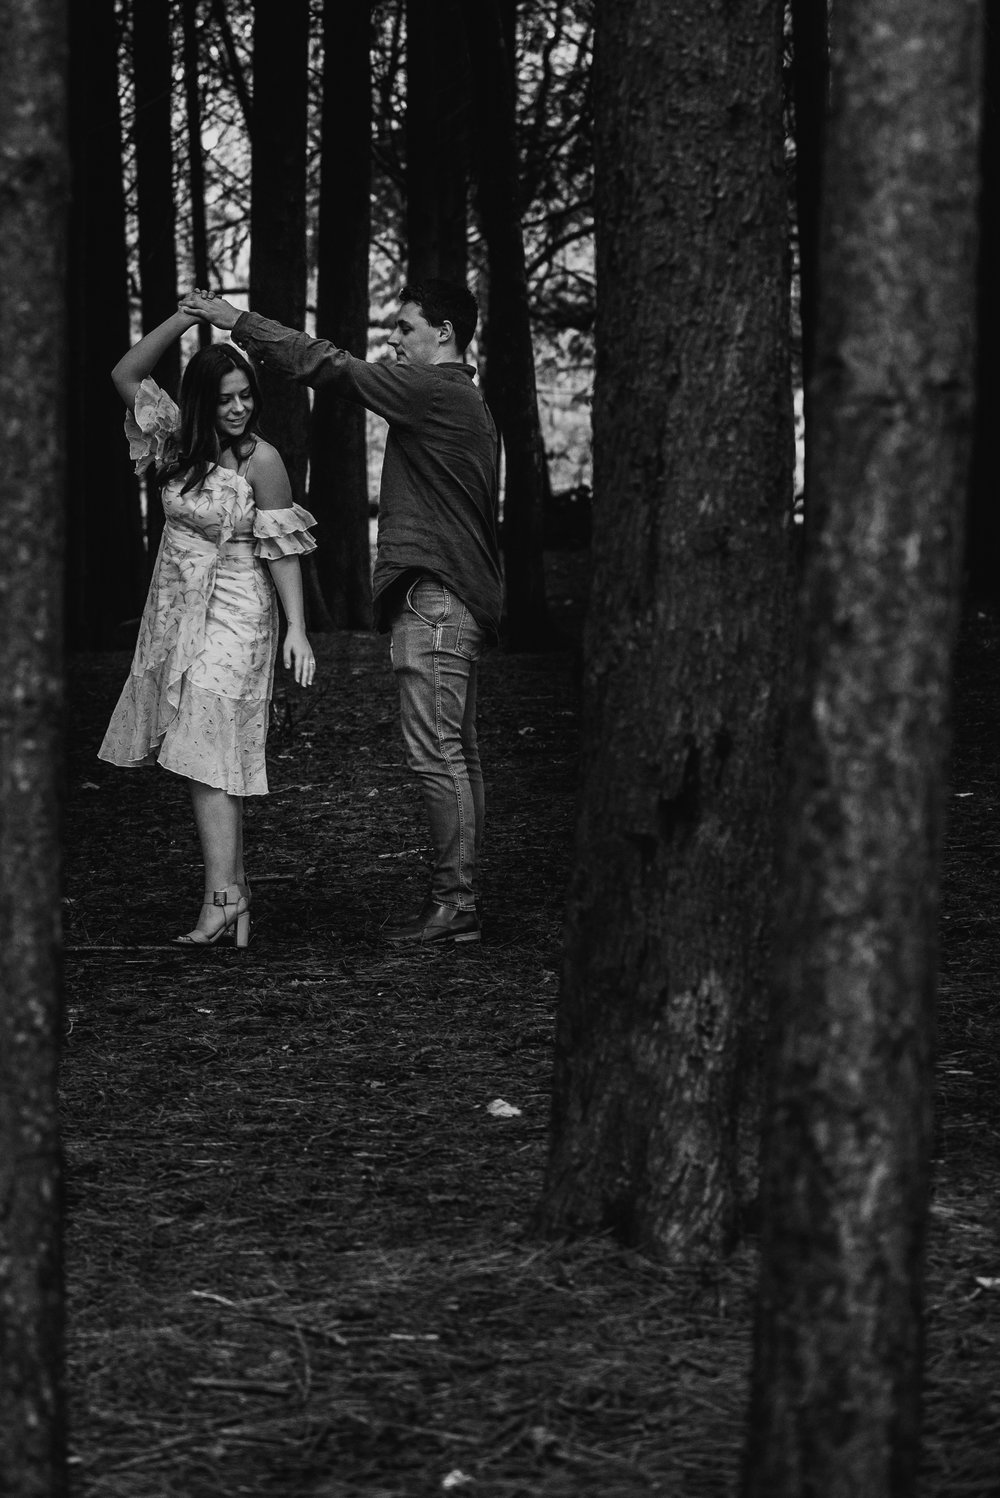 With this image of a couples session I did, I balanced them with the trees.